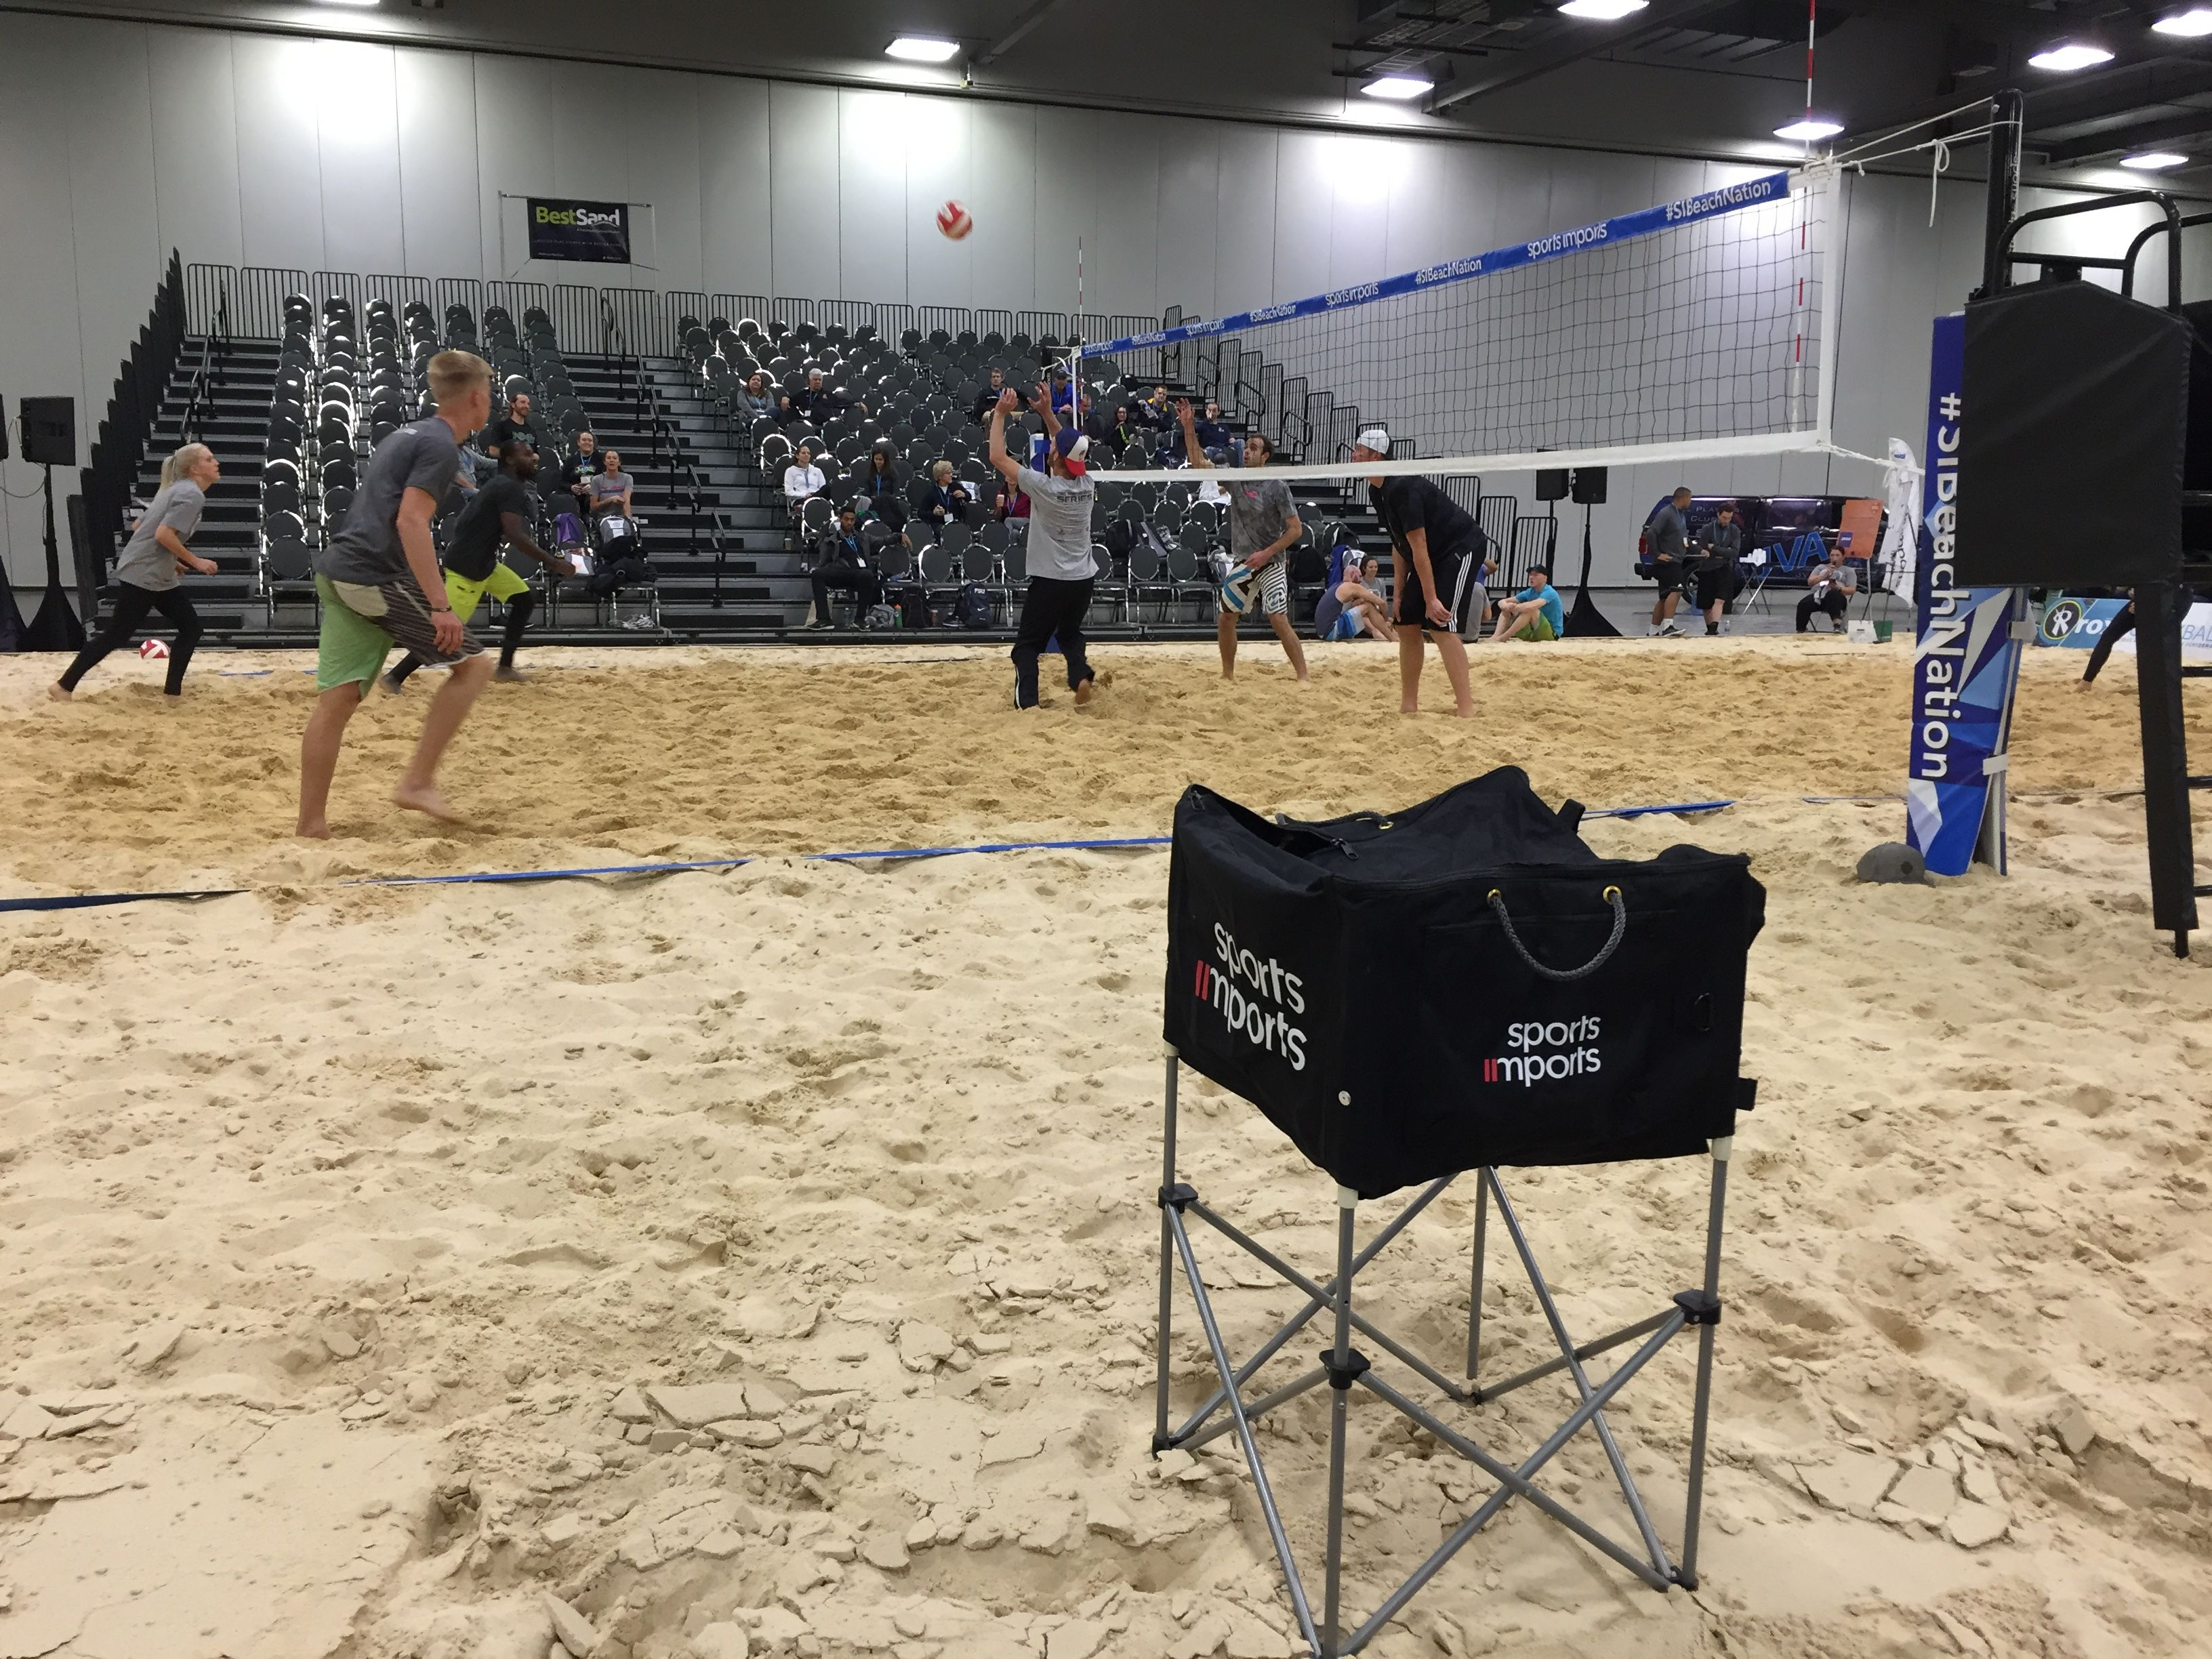 Beach Volleyball Equipment At The Avca Convention Volleyball Net Outdoor Volleyball Net Volleyball Equipment